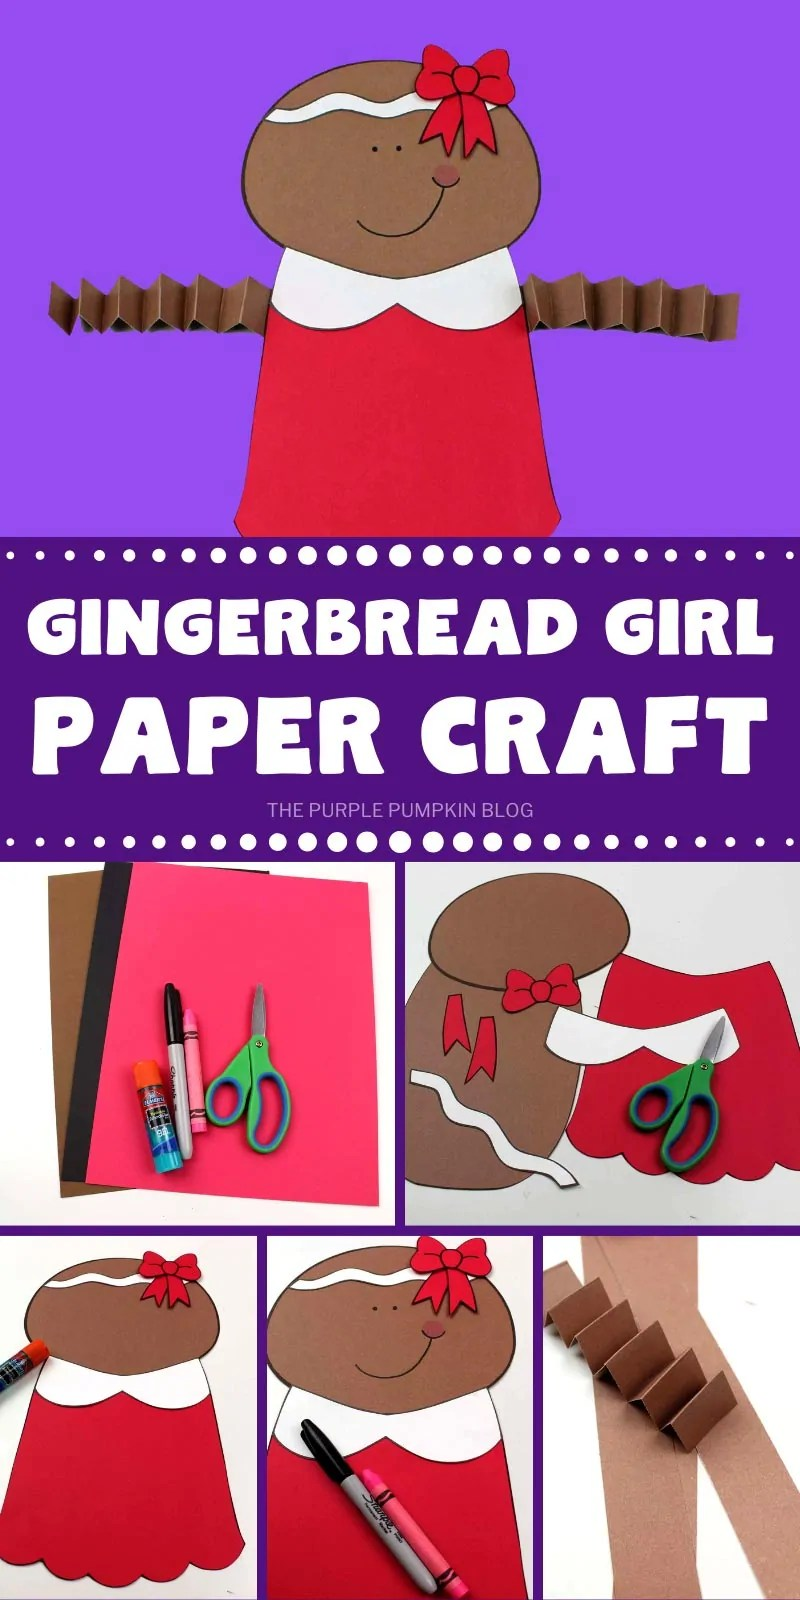 How to make a gingerbread girl paper craft with step by step photos